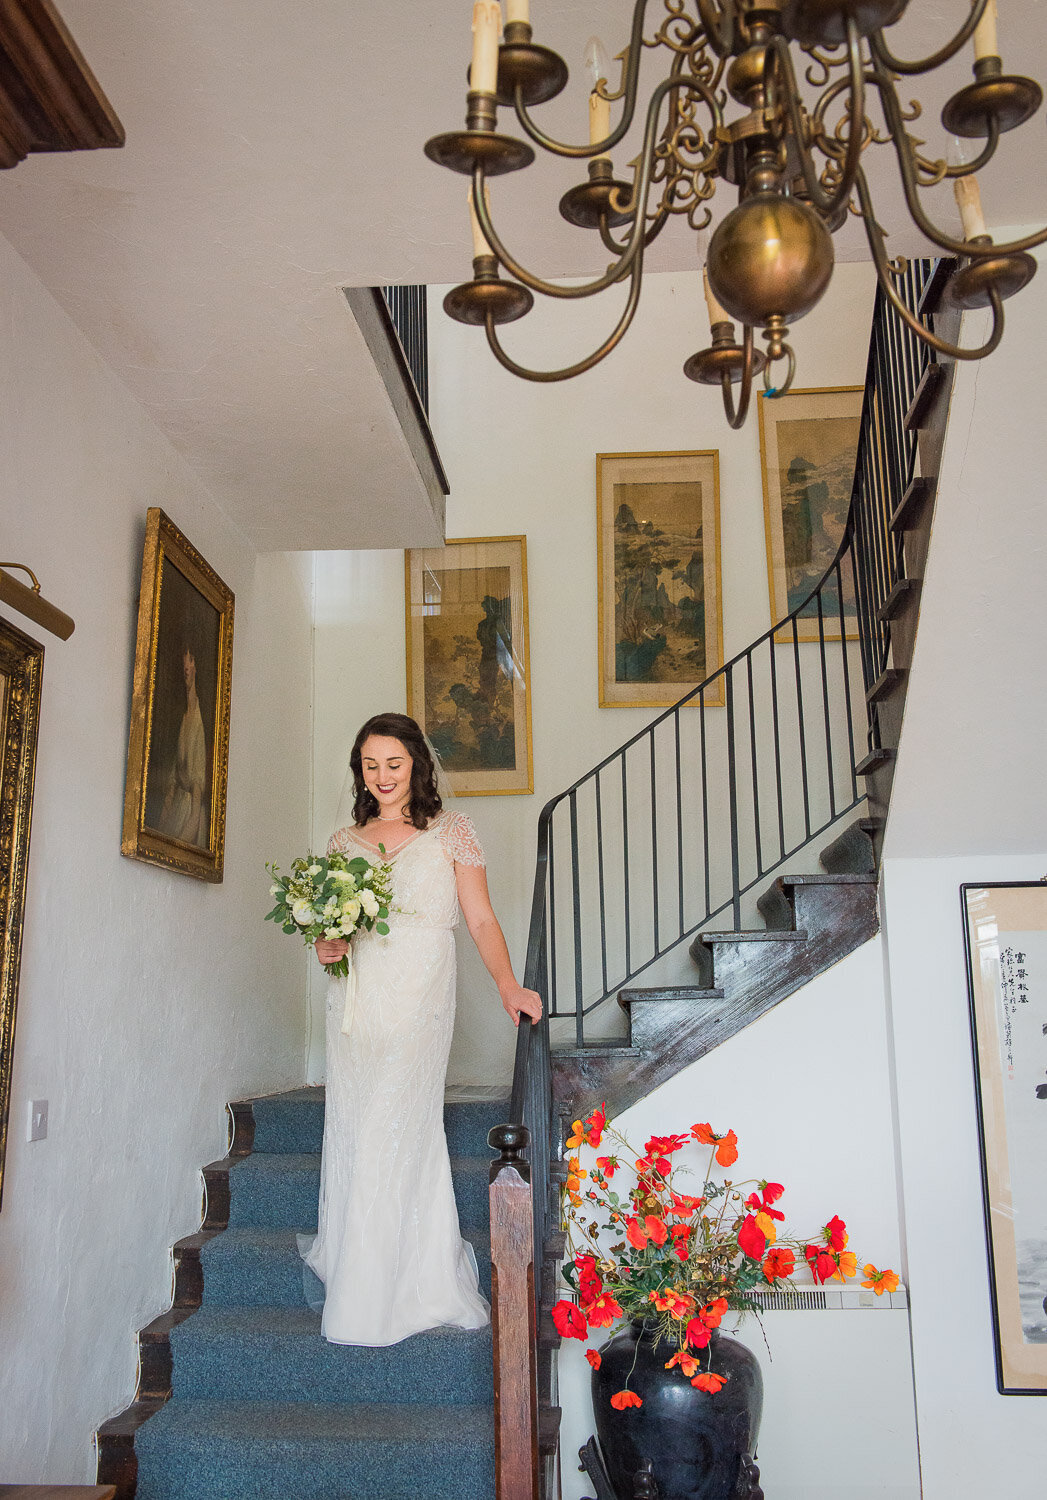 bride wearing a vintage, beaded wedding dress with sleeves walking down the stairs with blue carpet while holding a white flower bouquet